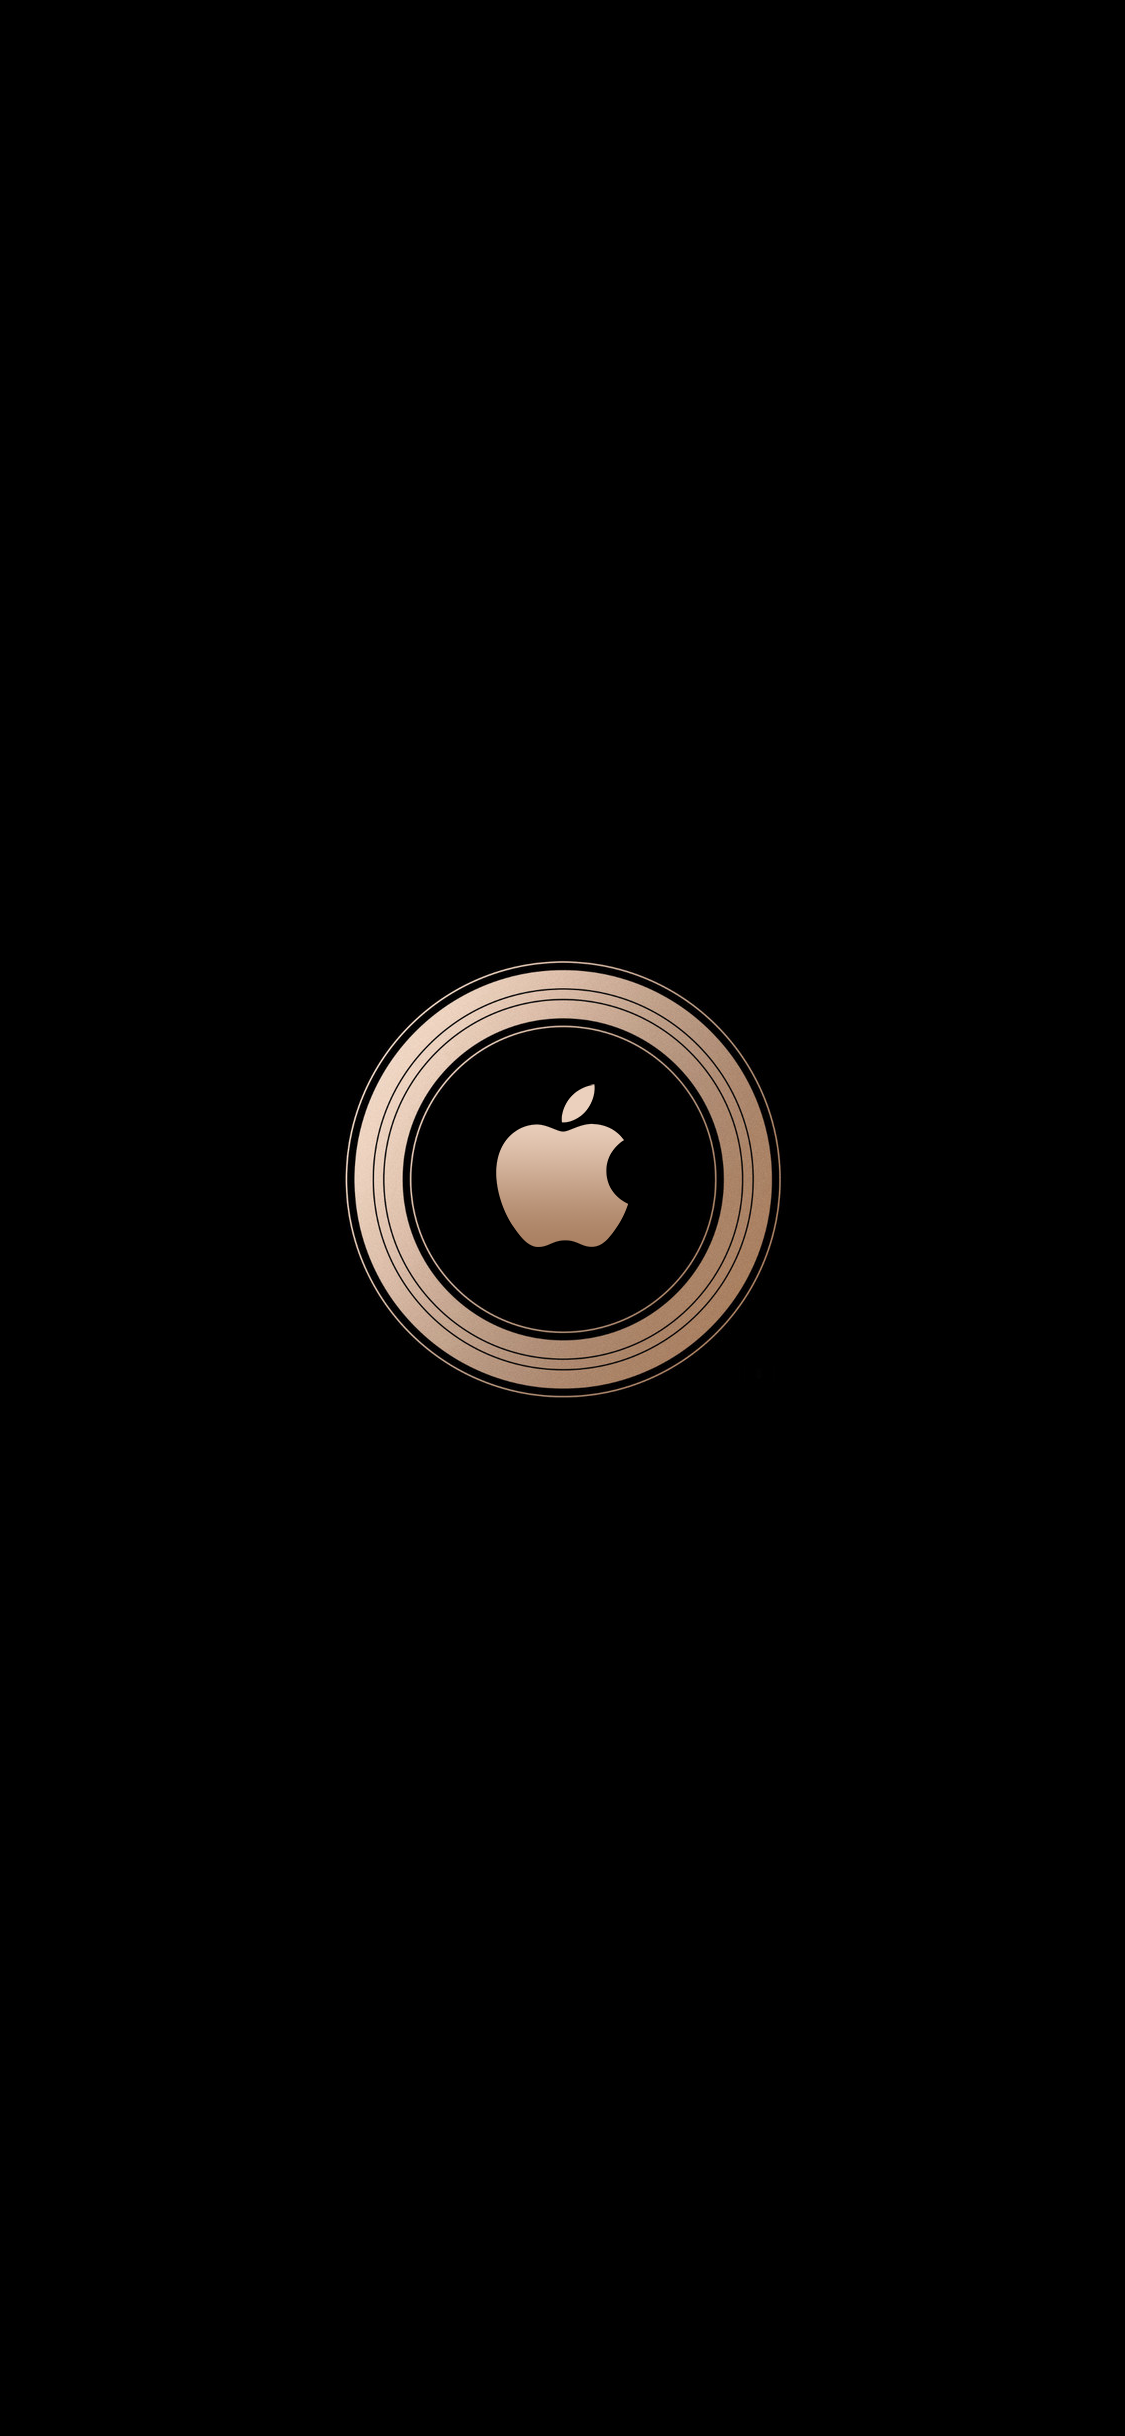 1125x2436 Gather round Apple event wallpapers